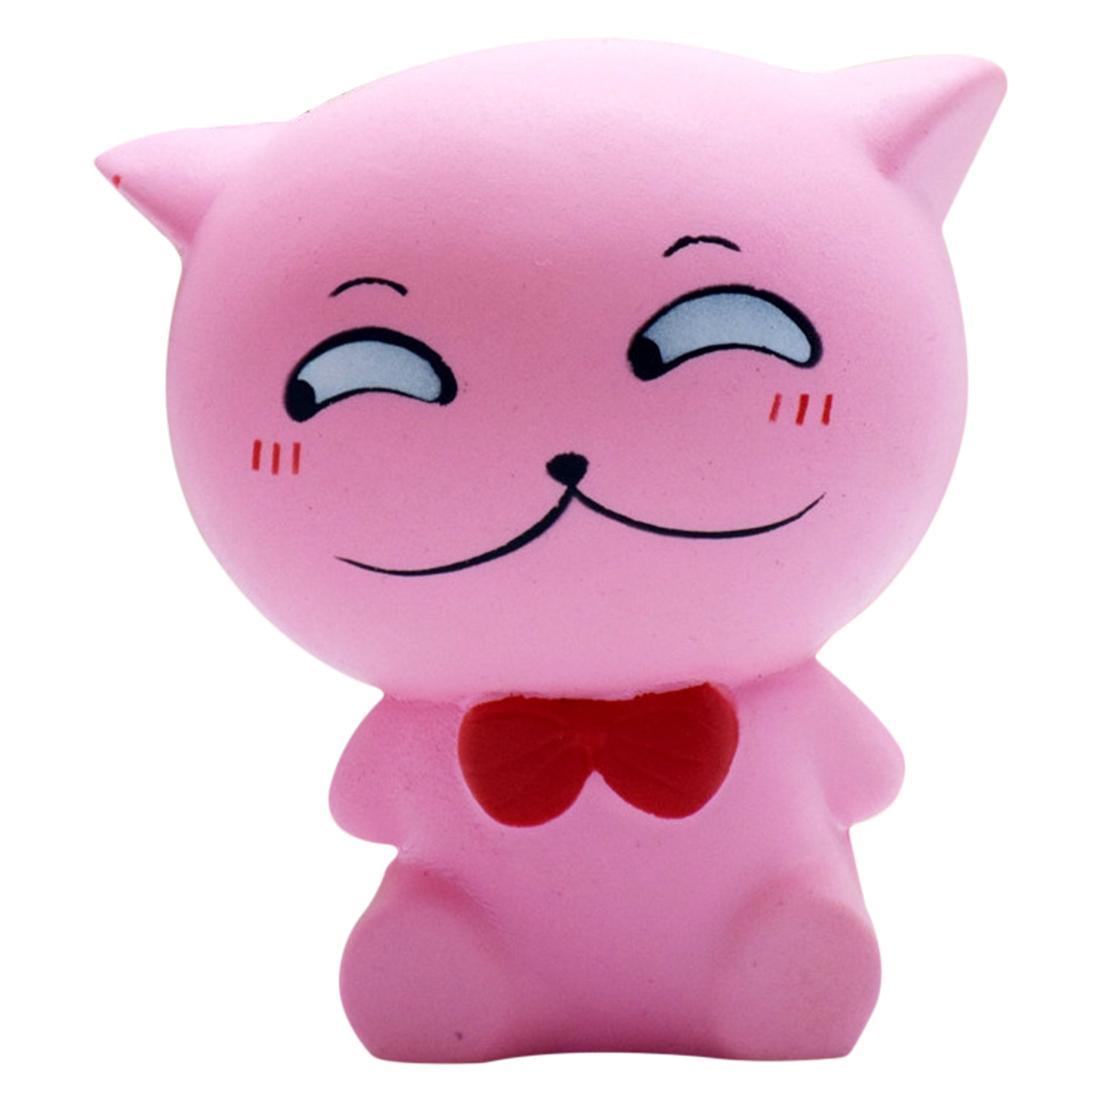 Etmakit Kawaii Squishy Cute Soft Charms Milk Bag Toy Slow Rising For Children Adults Relieves Stress Anxiety Cabinet Decor Mobile Phone Straps